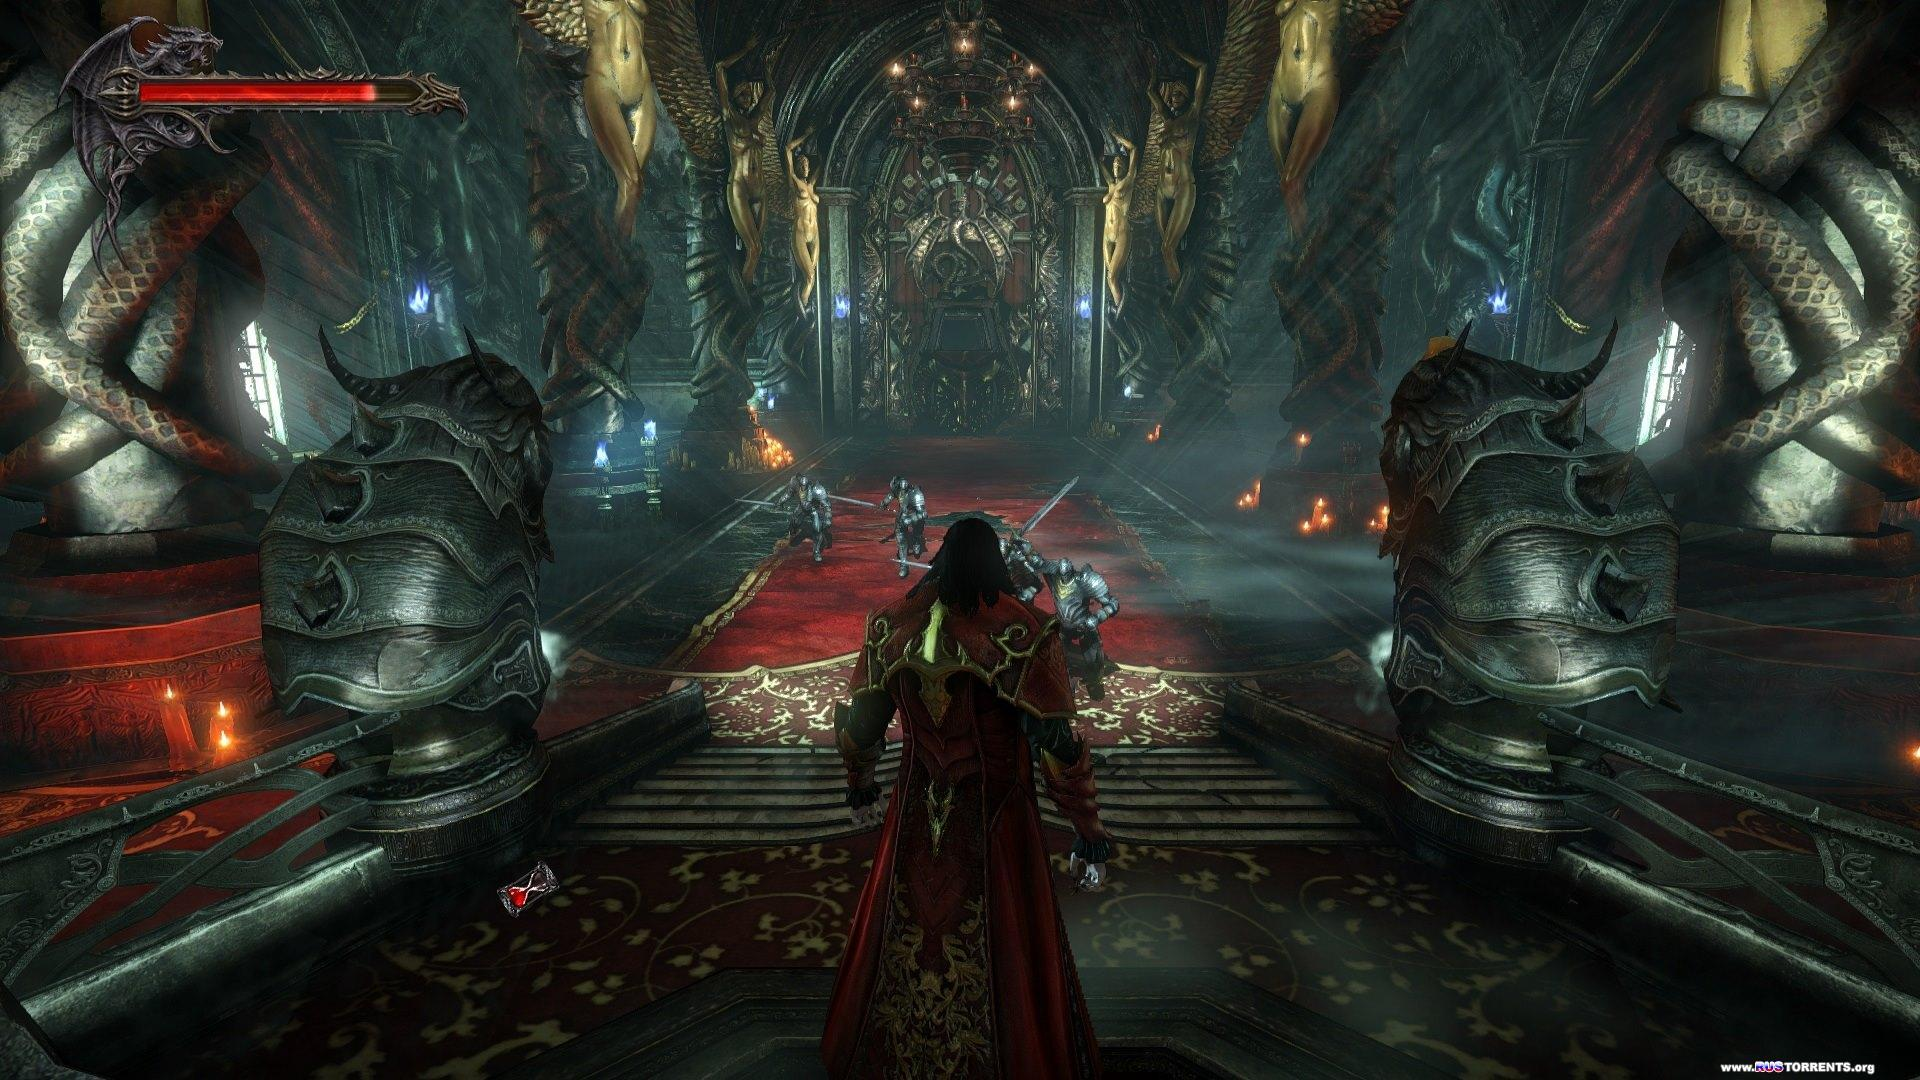 Castlevania: Lords of Shadow 2 [v 1.0.0.1u1 + 4 DLC] | PC | RePack �� z10yded